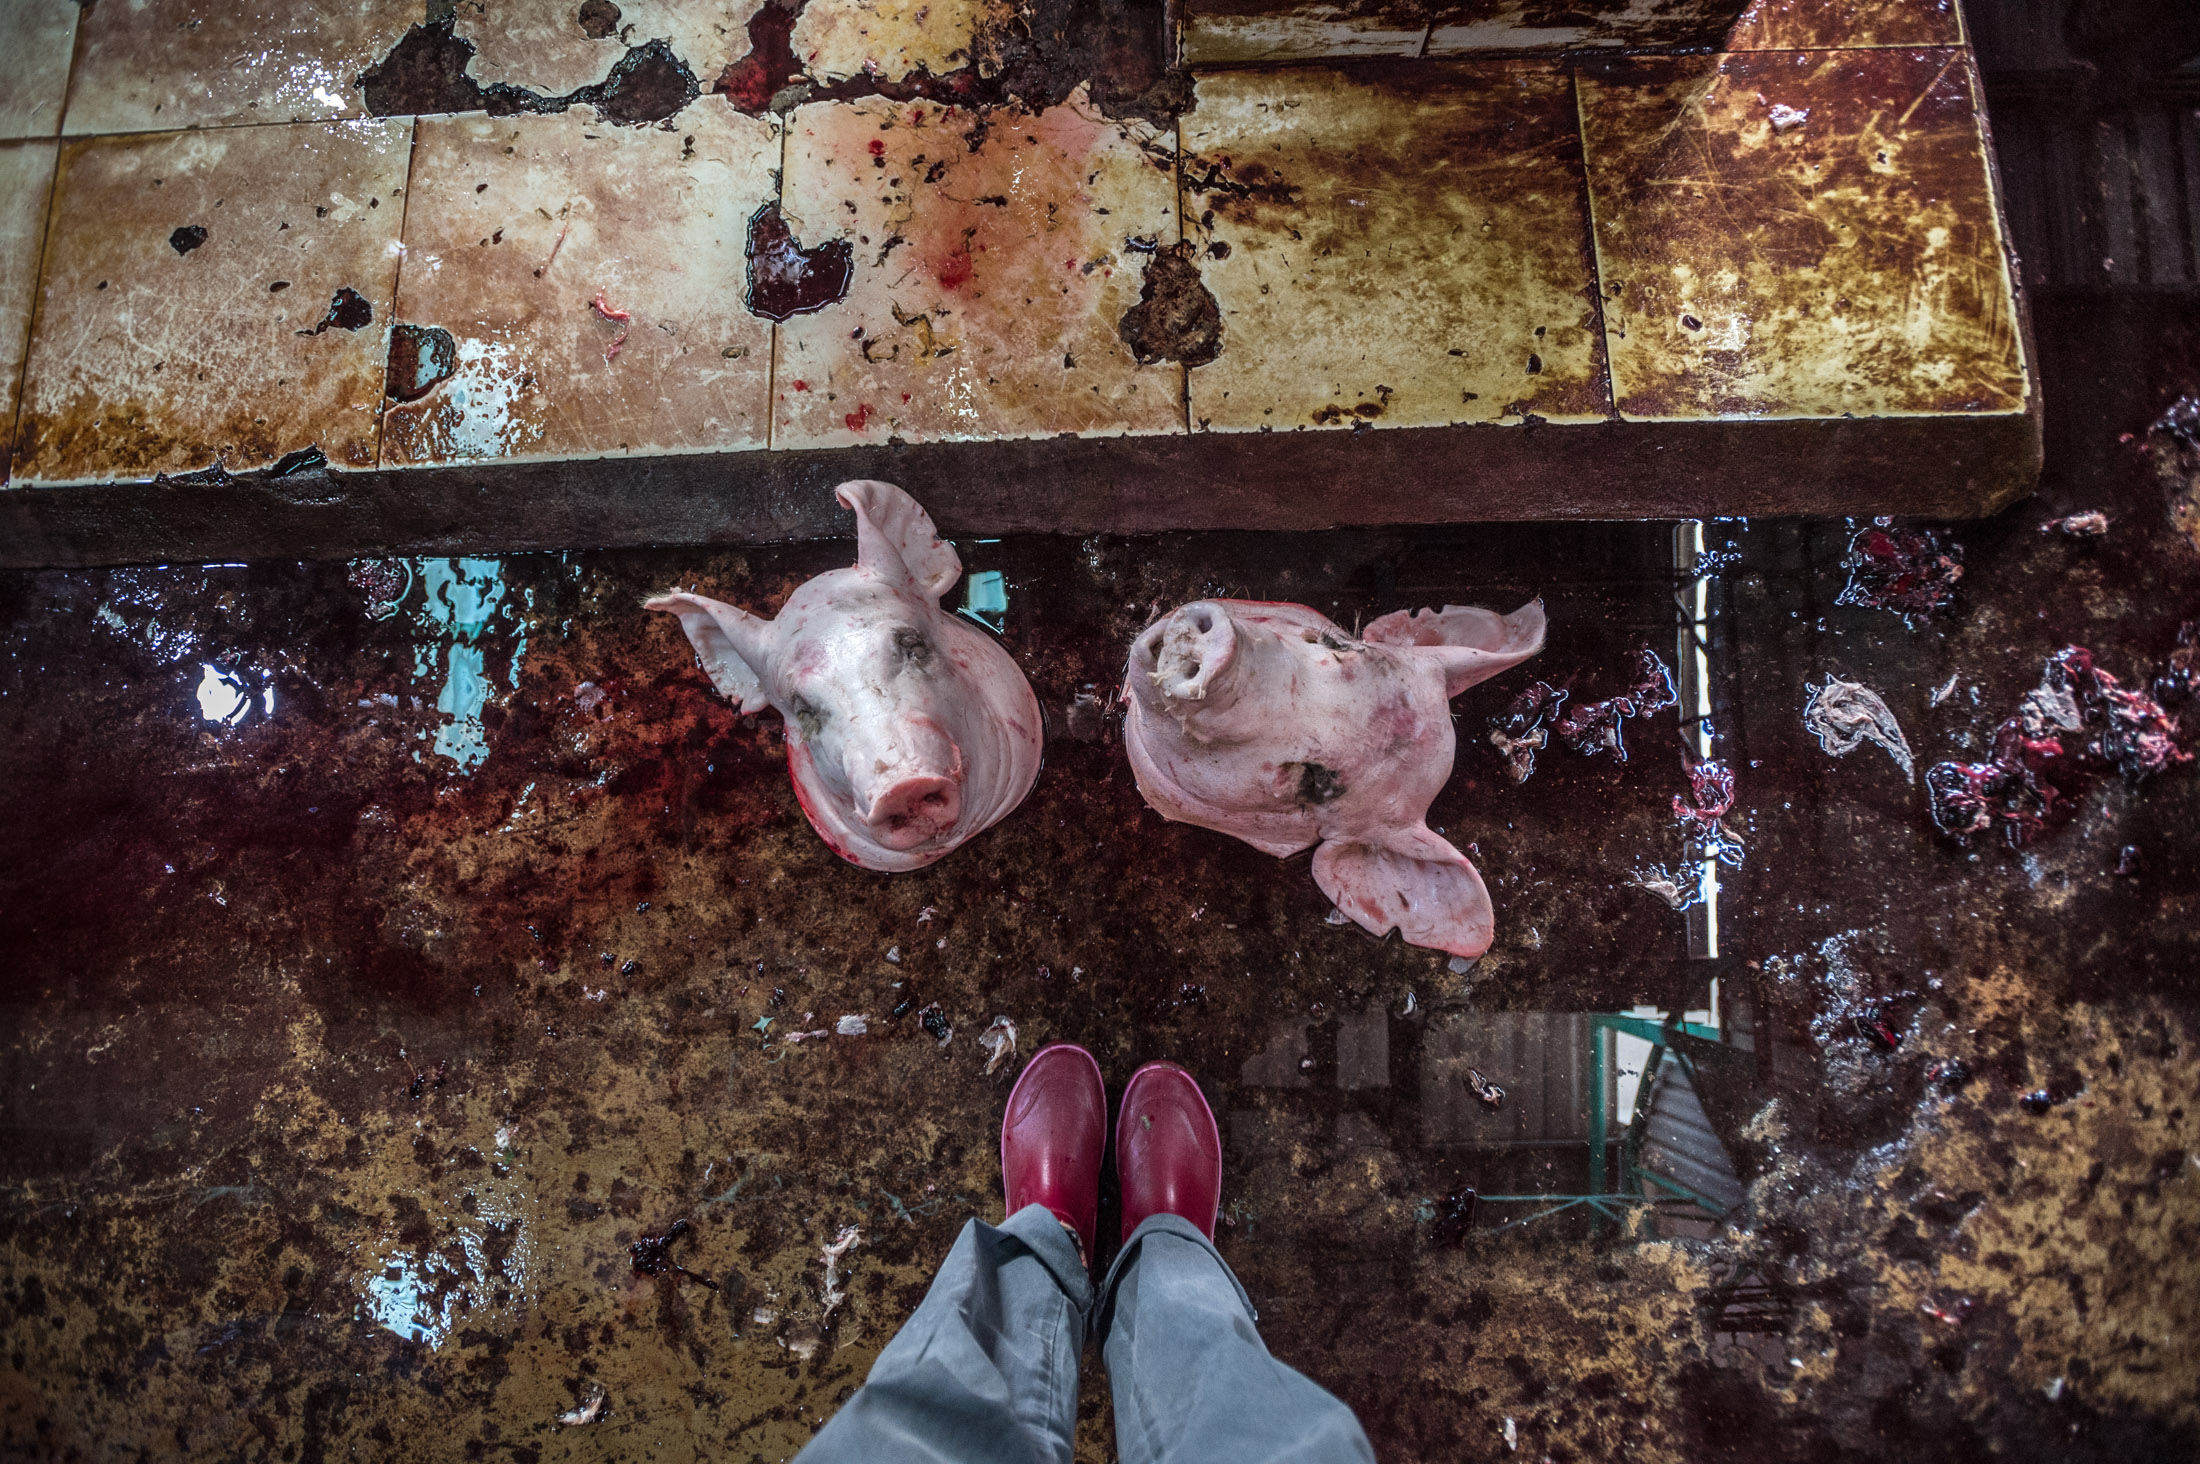 An Expose on Animal Clubbing at Thai Slaughterhouses - We